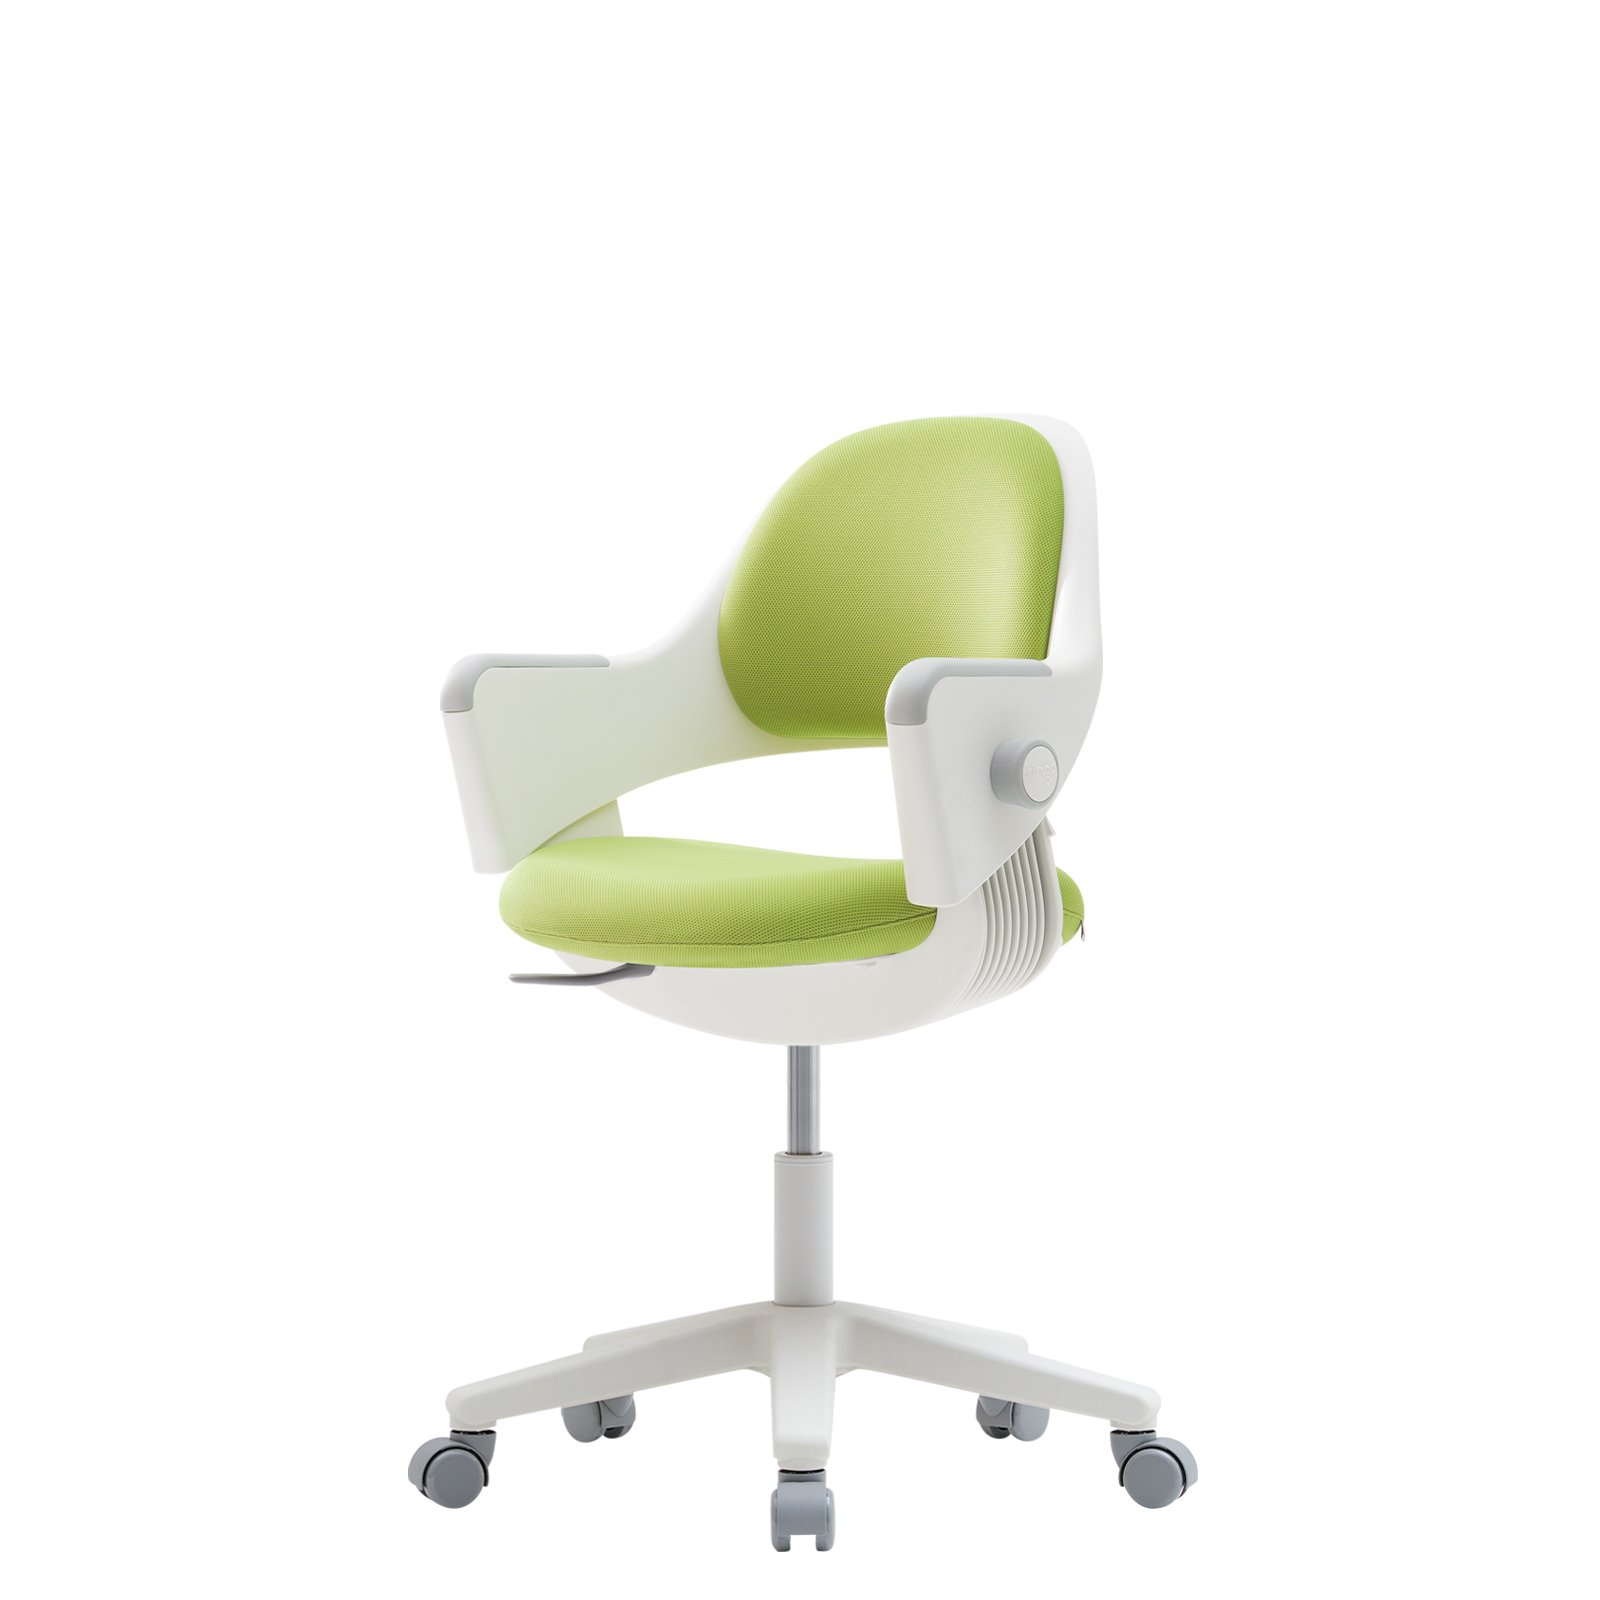 sidiz NEW Ringo Kids Desk Chair Growing Adjustable [Rotating type] (Fabric_Green_F567 + Footrest)